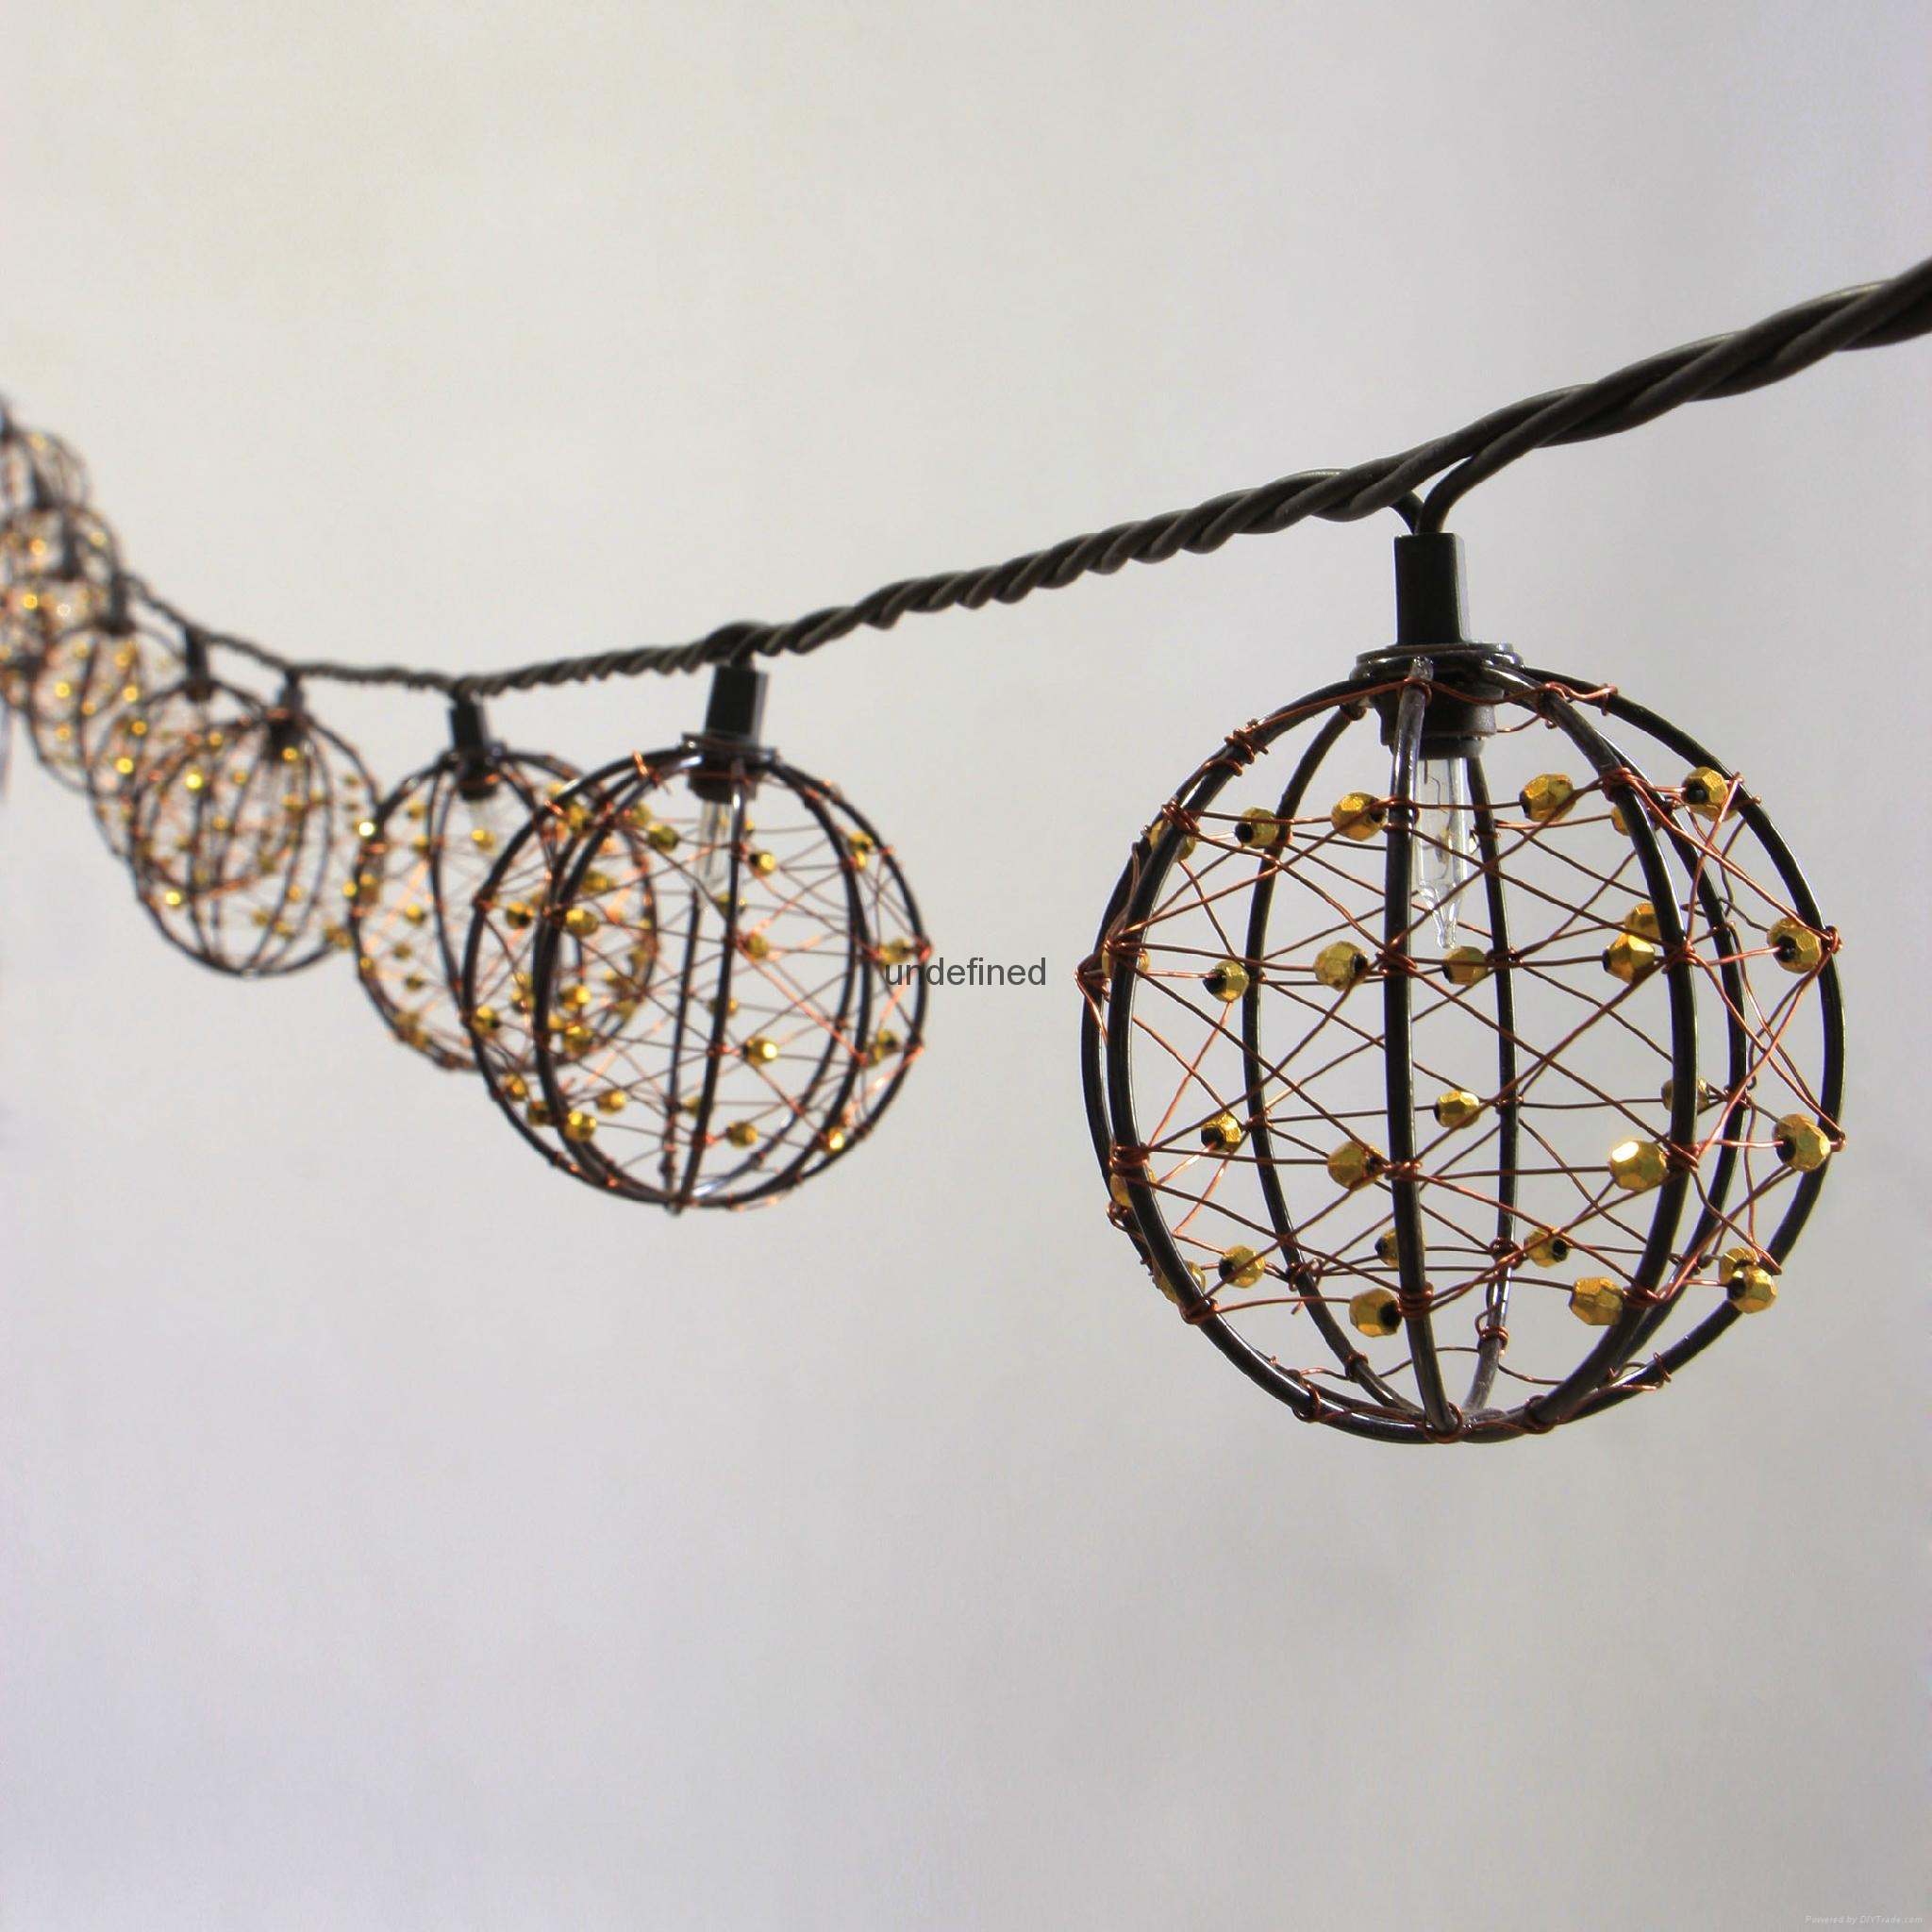 Decorative Garden String Lights : Party String Lights-Decorative Beaded Copper Wire Ball string light 10ct - KF01043 - Lawn and ...